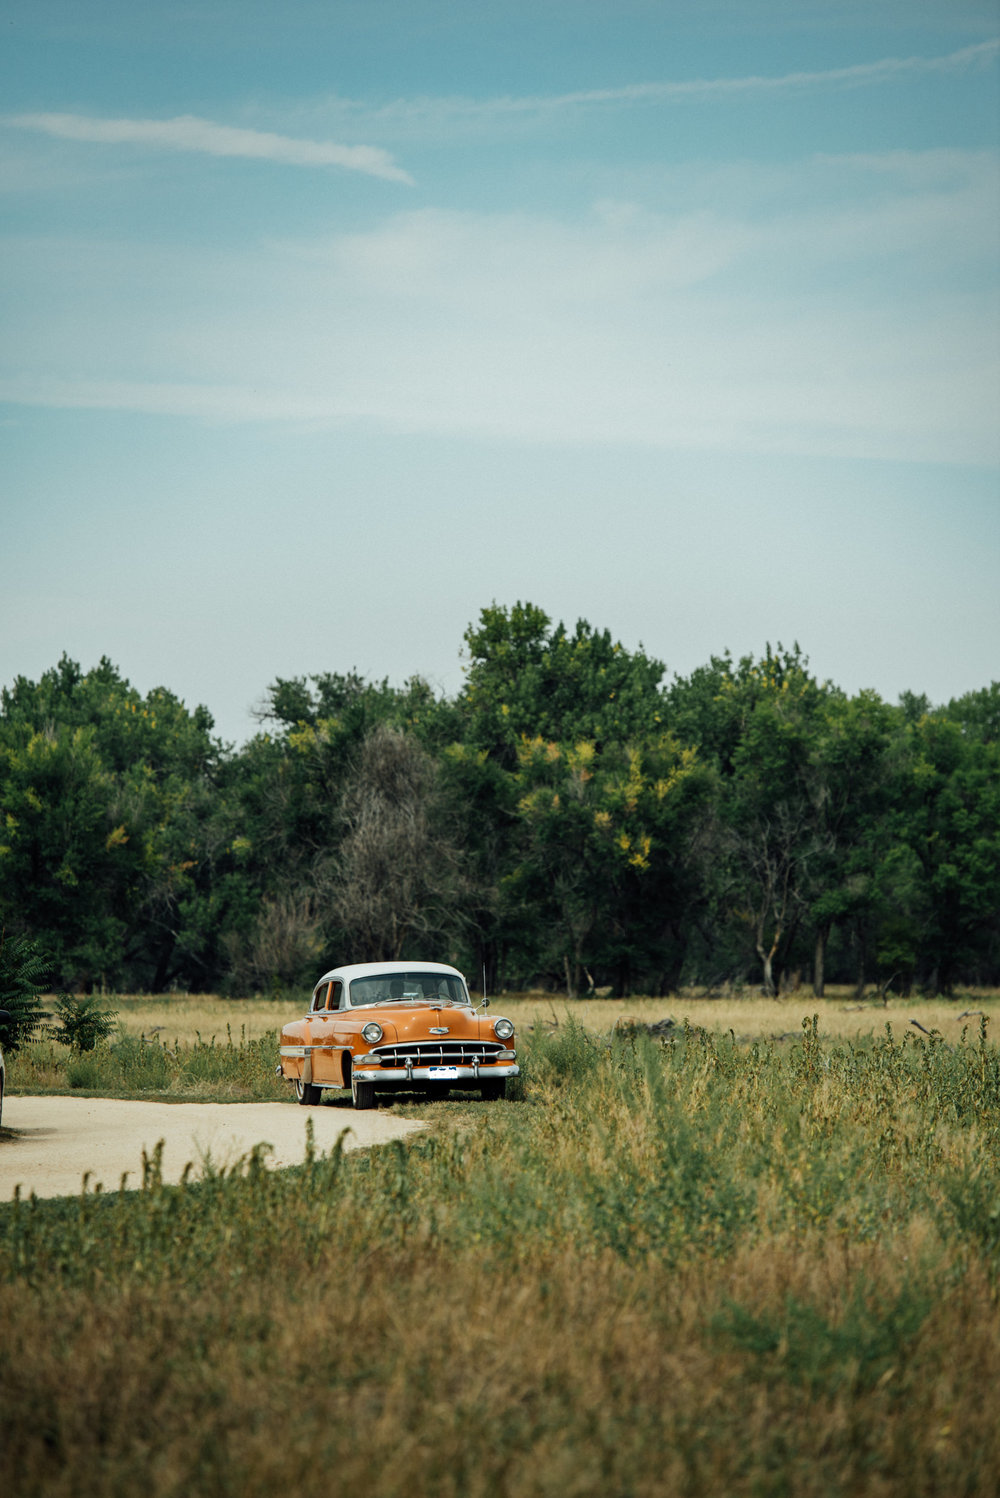 Beautiful Chevy 54 Bel Air at Colorado wedding photographer